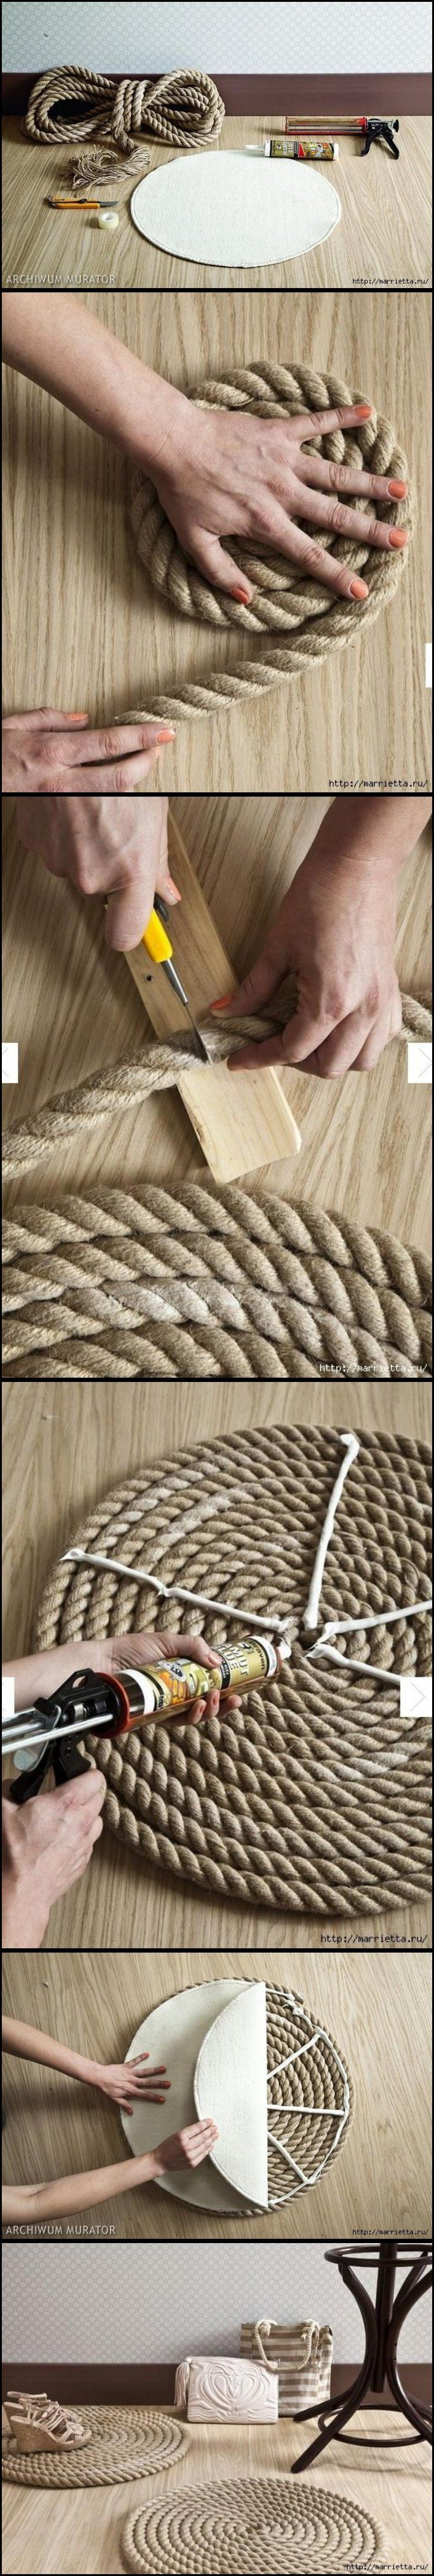 DIY Simple Rope Rug                                                                                                                                                                                 More